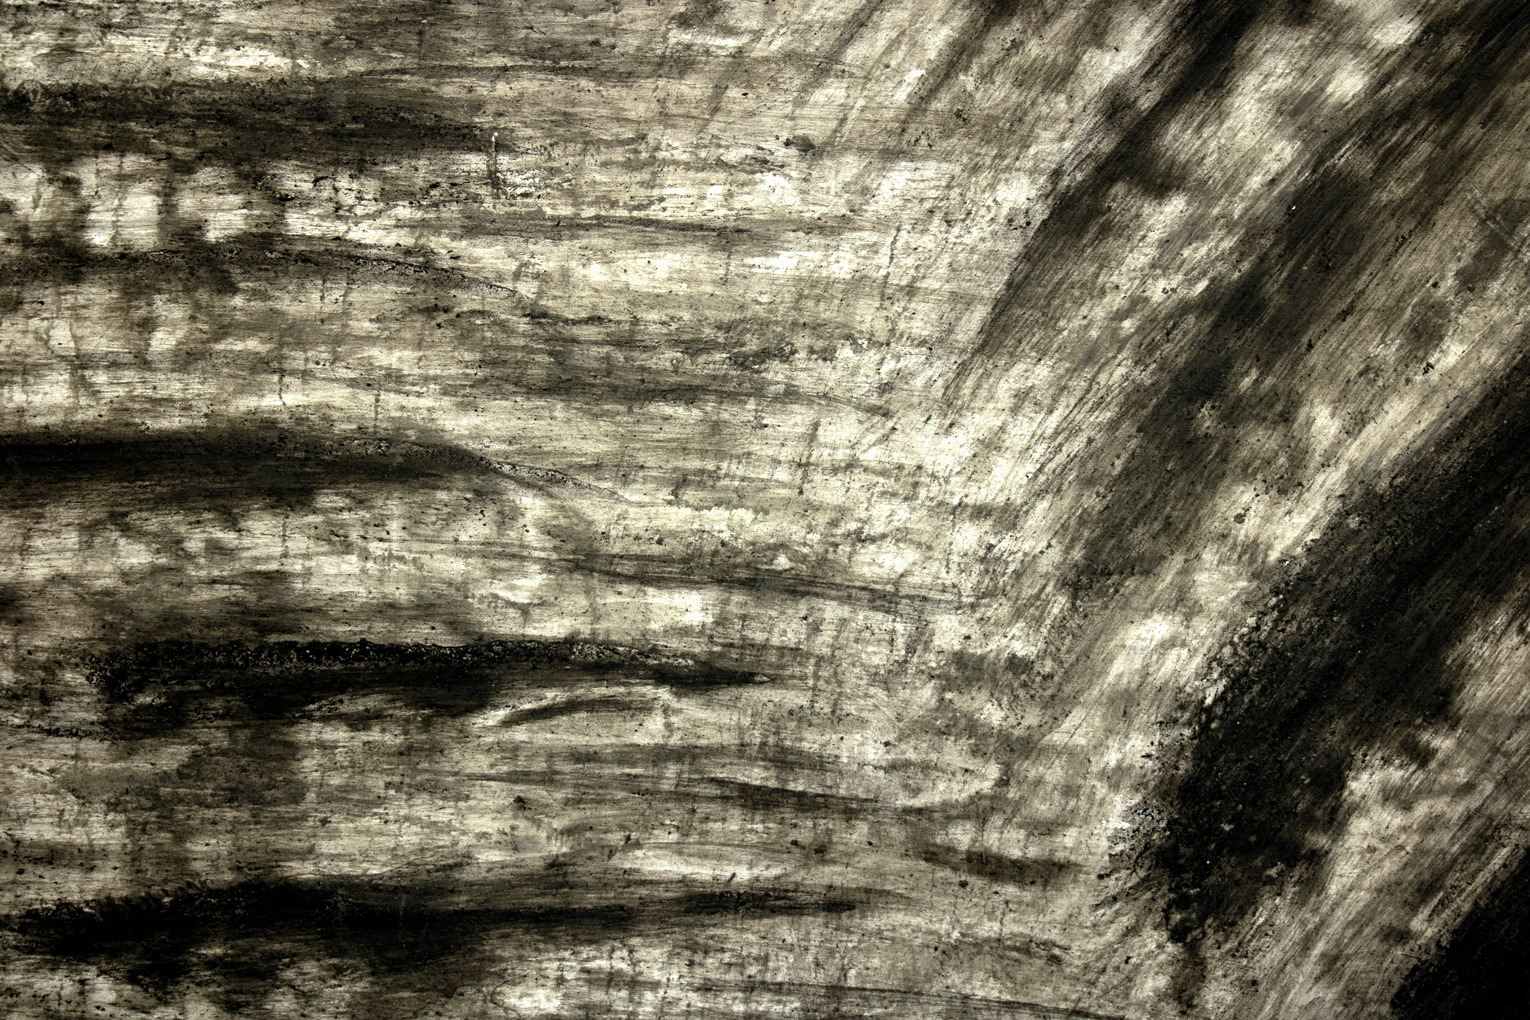 Detail of monosema - 2019 - ashes on paper, 140 x 320 cm